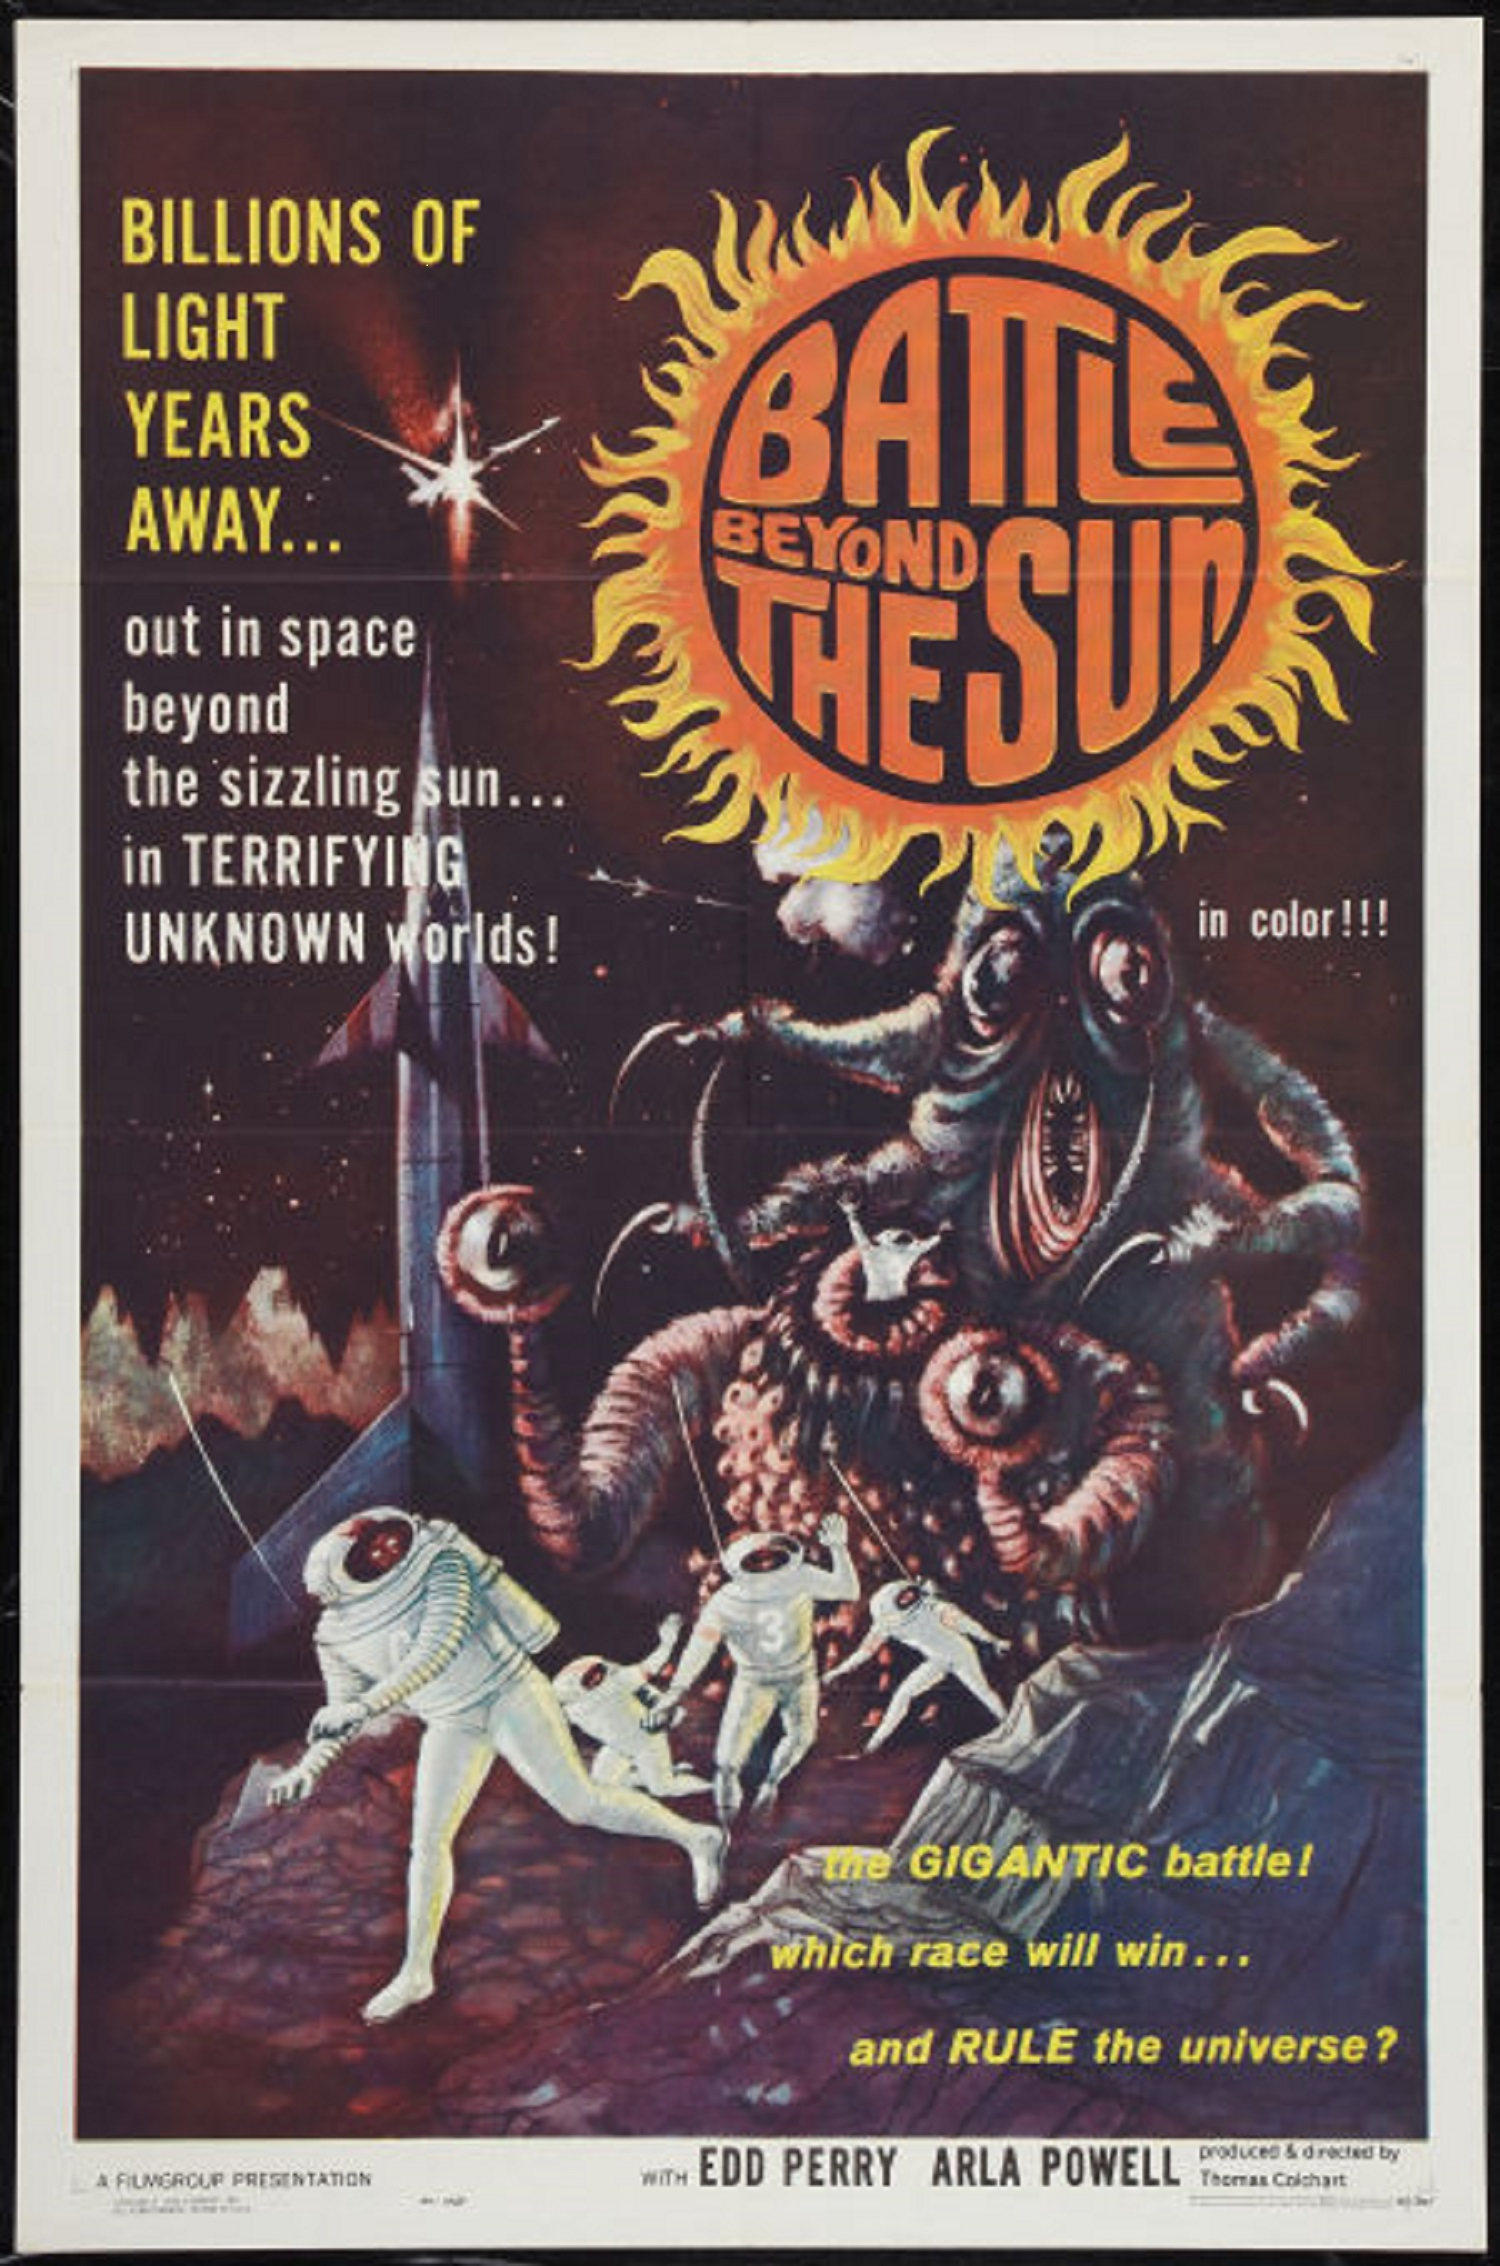 Movie Poster Battle Beyond The Sun Sci Fi Cult Classic